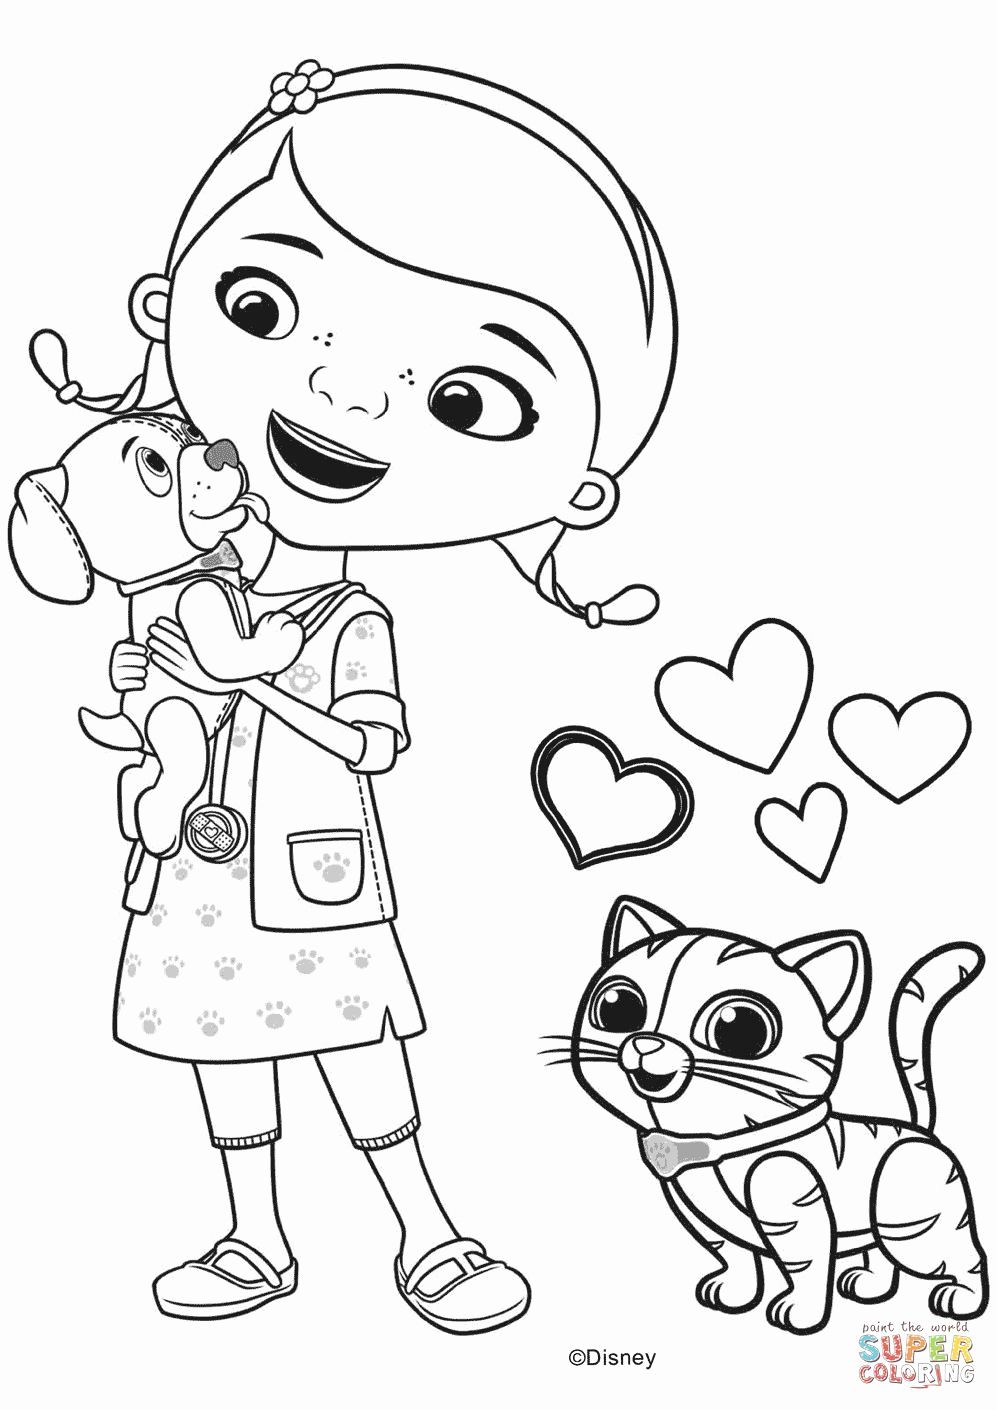 Coloring Pages For Kids Disney Jr In 2020 Doc Mcstuffins Coloring Pages Disney Coloring Pages Free Coloring Pages